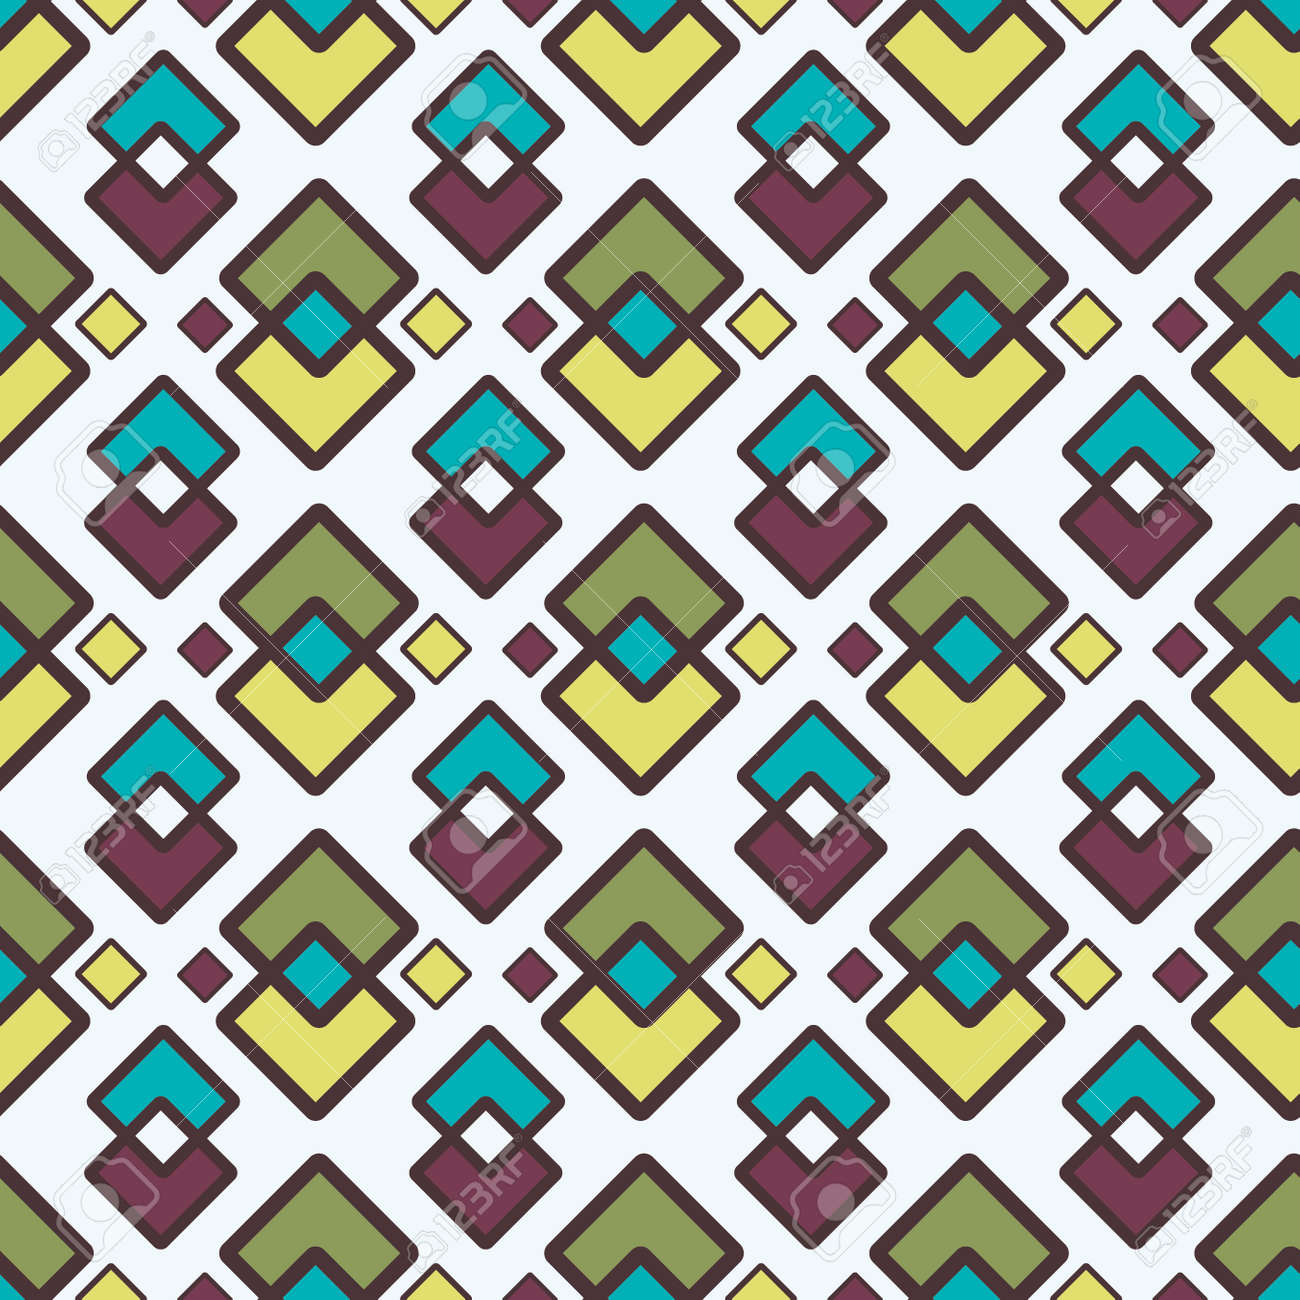 Square Abstract Geometric Pattern With Rhombuses Seamless Vector